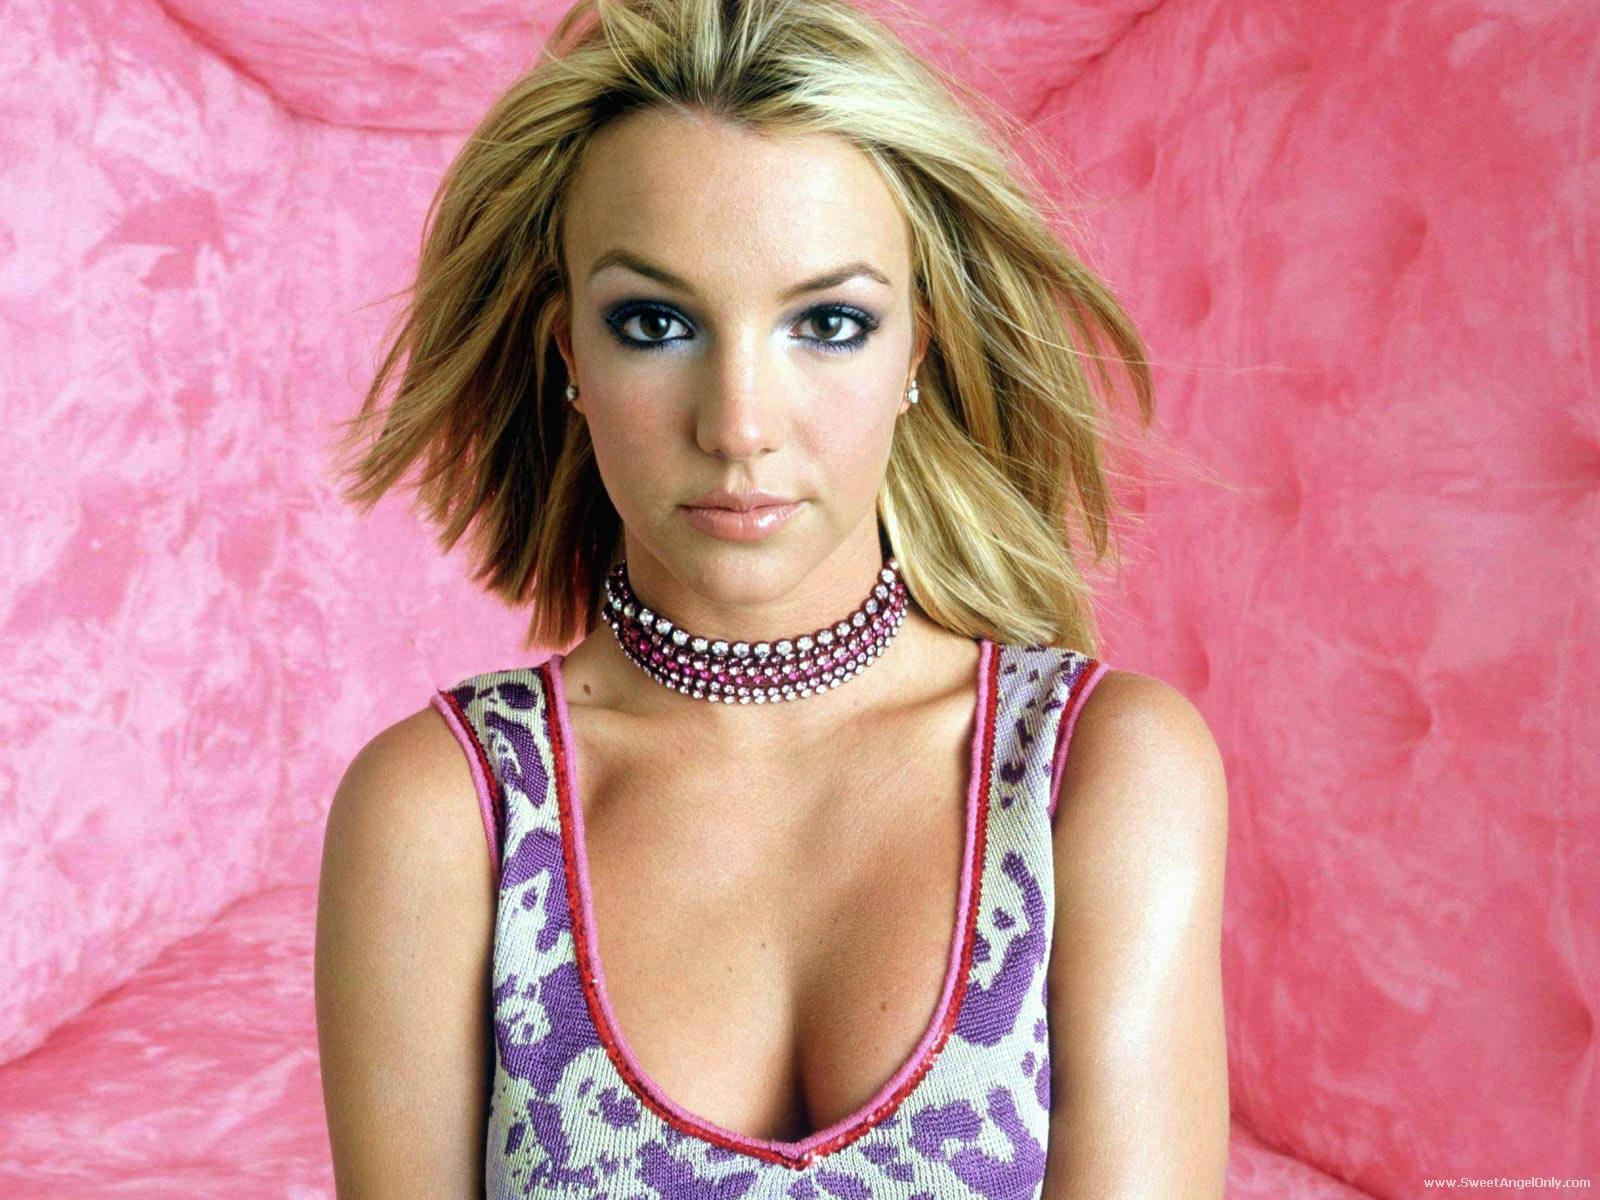 http://4.bp.blogspot.com/-TqhLHrX0z8k/TtiShaqUrzI/AAAAAAAABQo/Cat1xWBrCIM/s1600/hollywood_model_and_singer_britney_spears_wallpaper-1600x1200-06.jpg